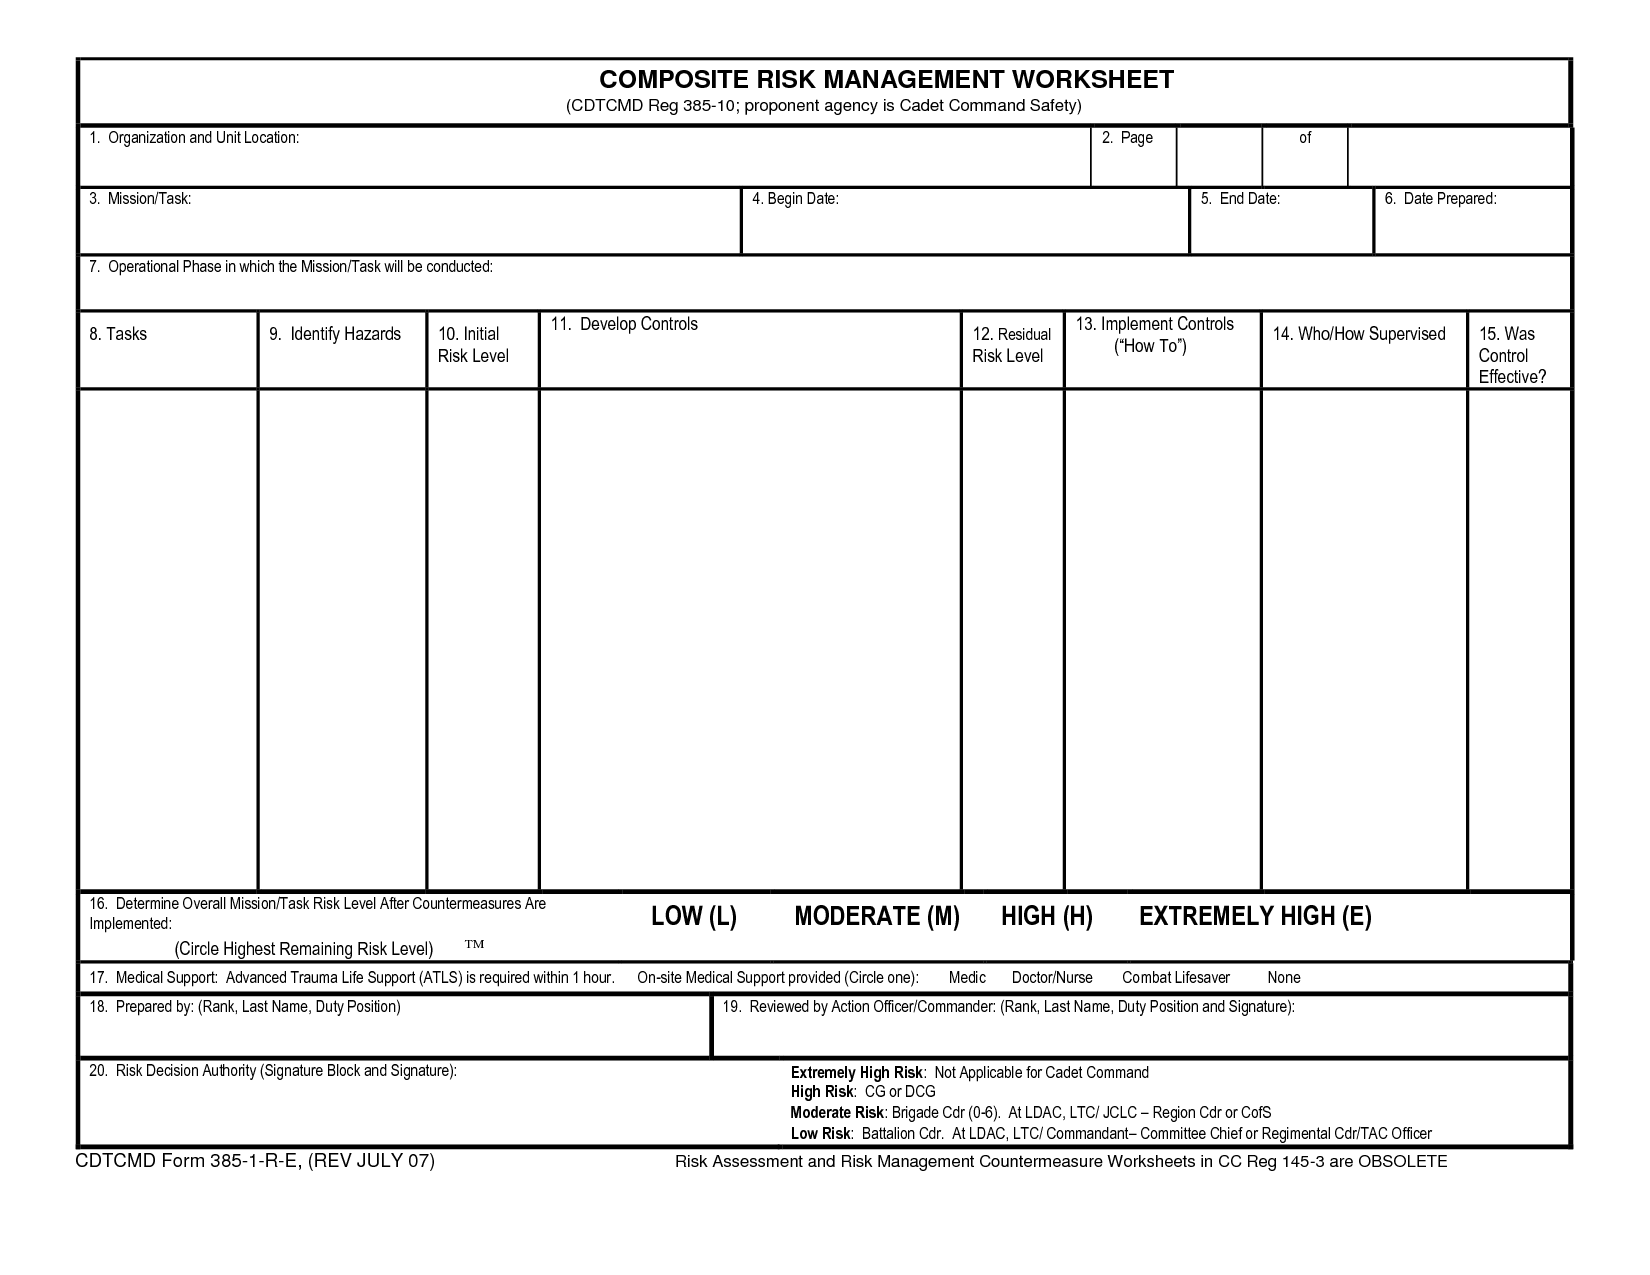 Printables Risk Management Worksheet da form 7566 composite risk management worksheet syndeomedia mysticfudge